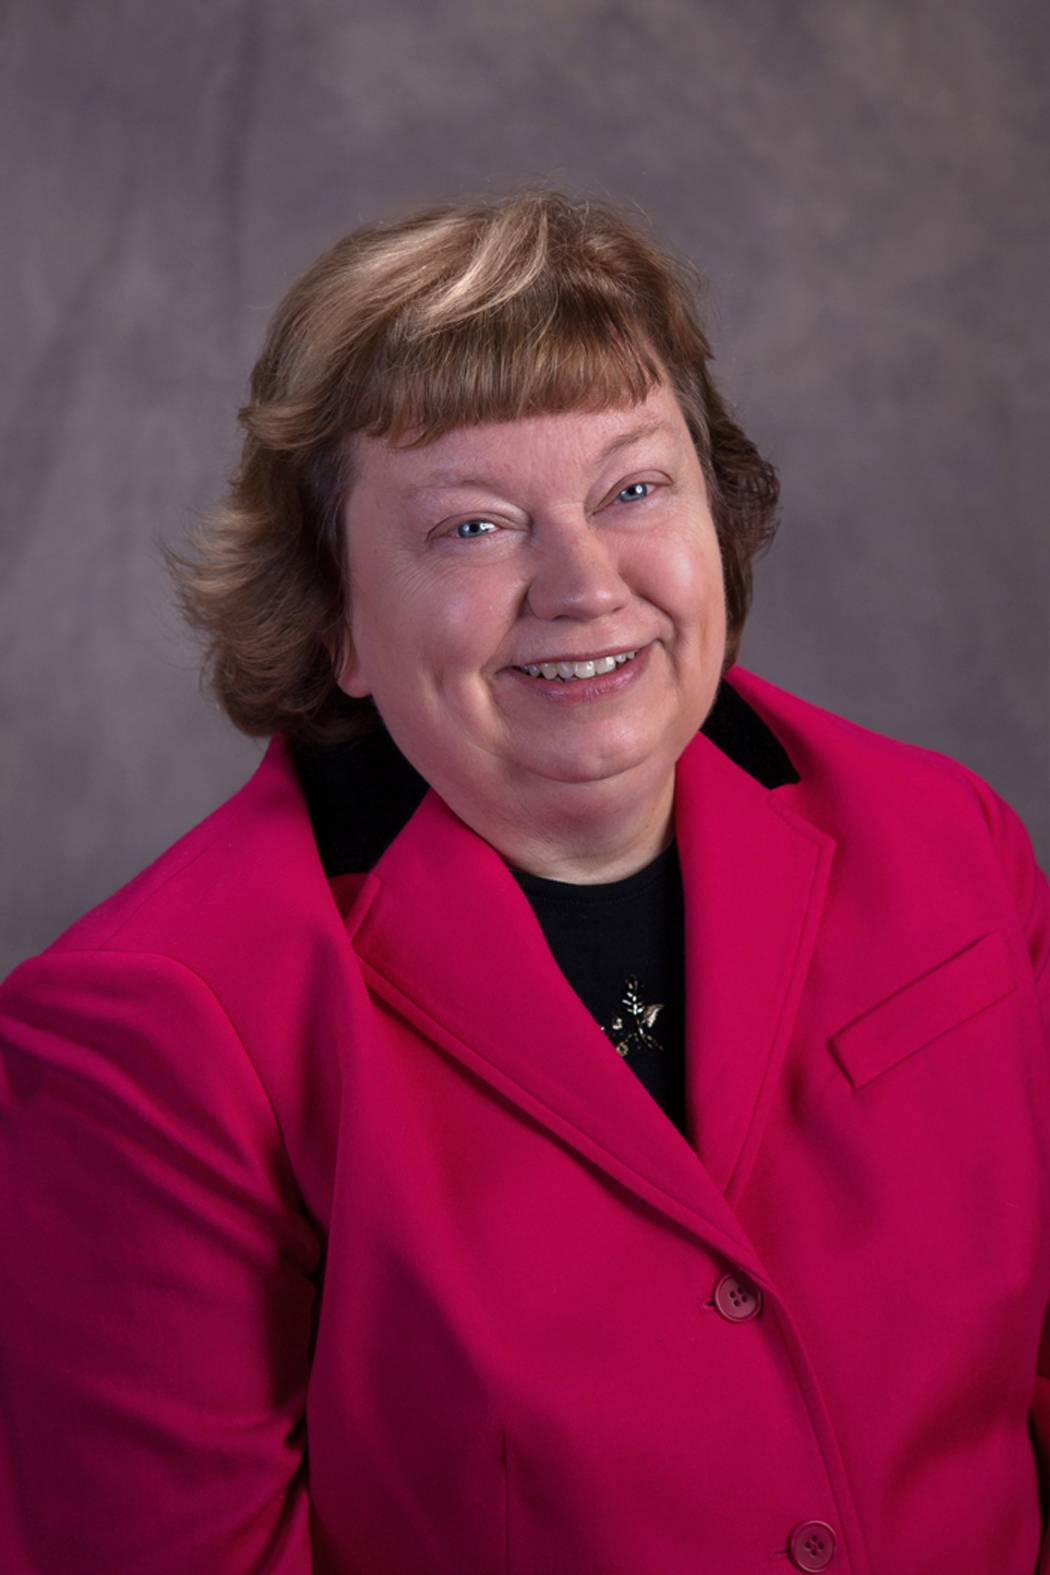 Mary McNeill, running for Antioch District 34 School Board (4-year Terms)